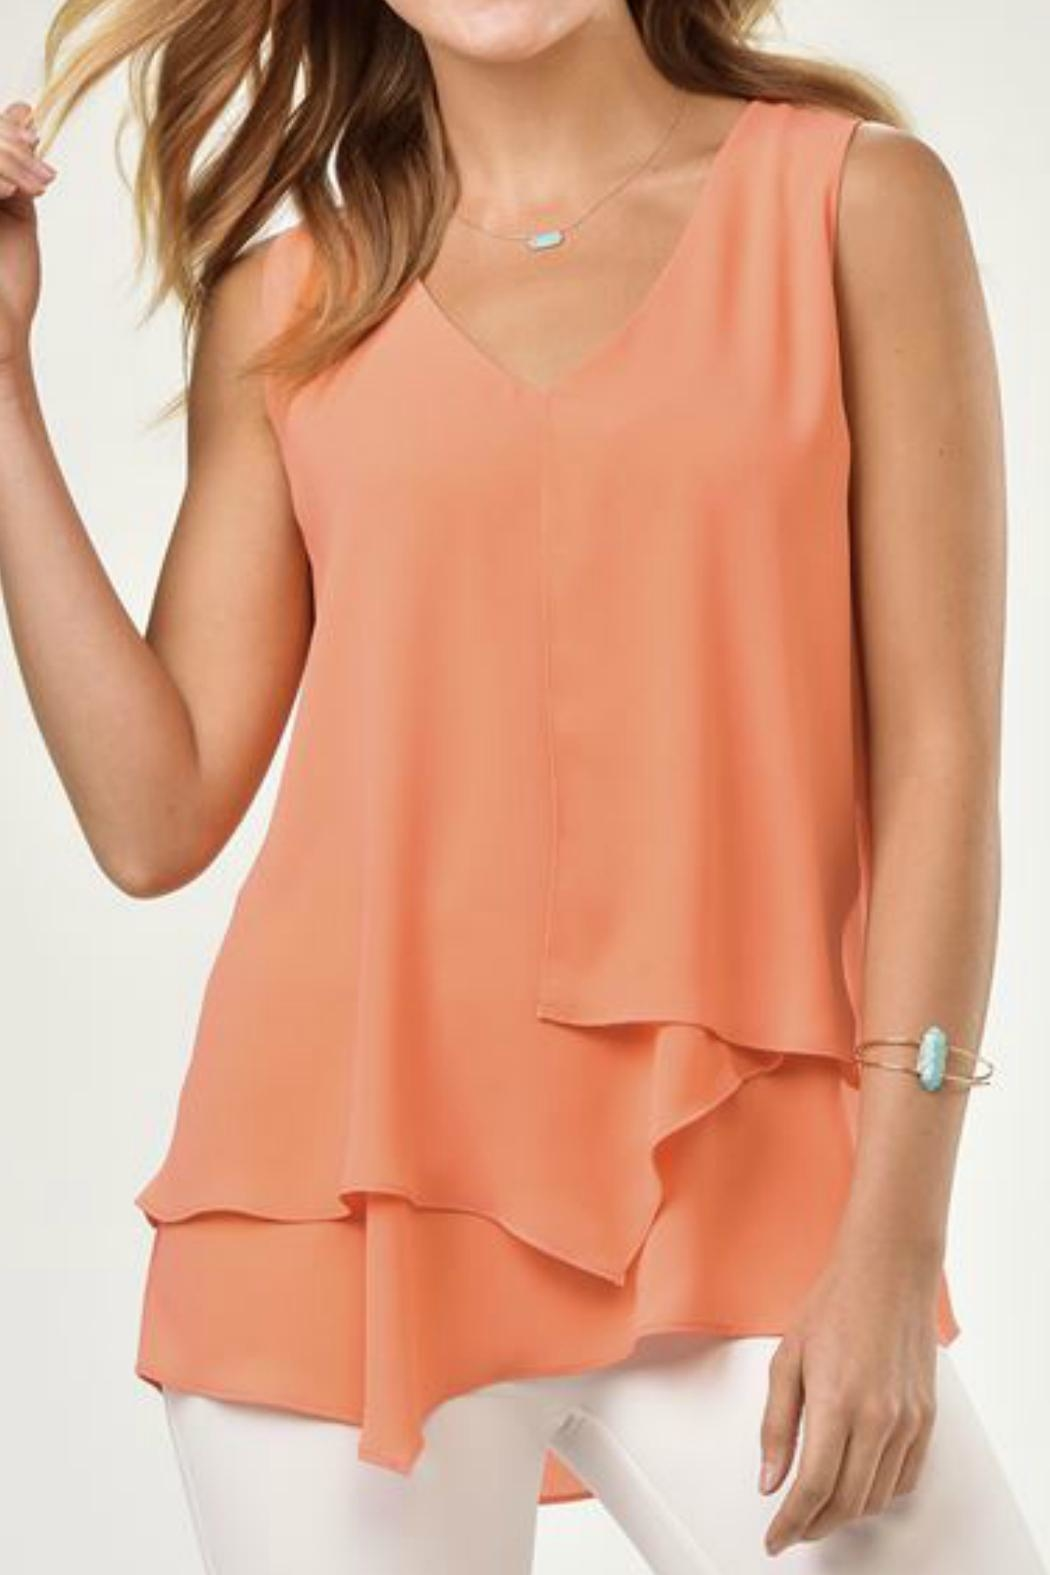 Charlie Paige Asymmetrical Chiffon Top - Front Cropped Image